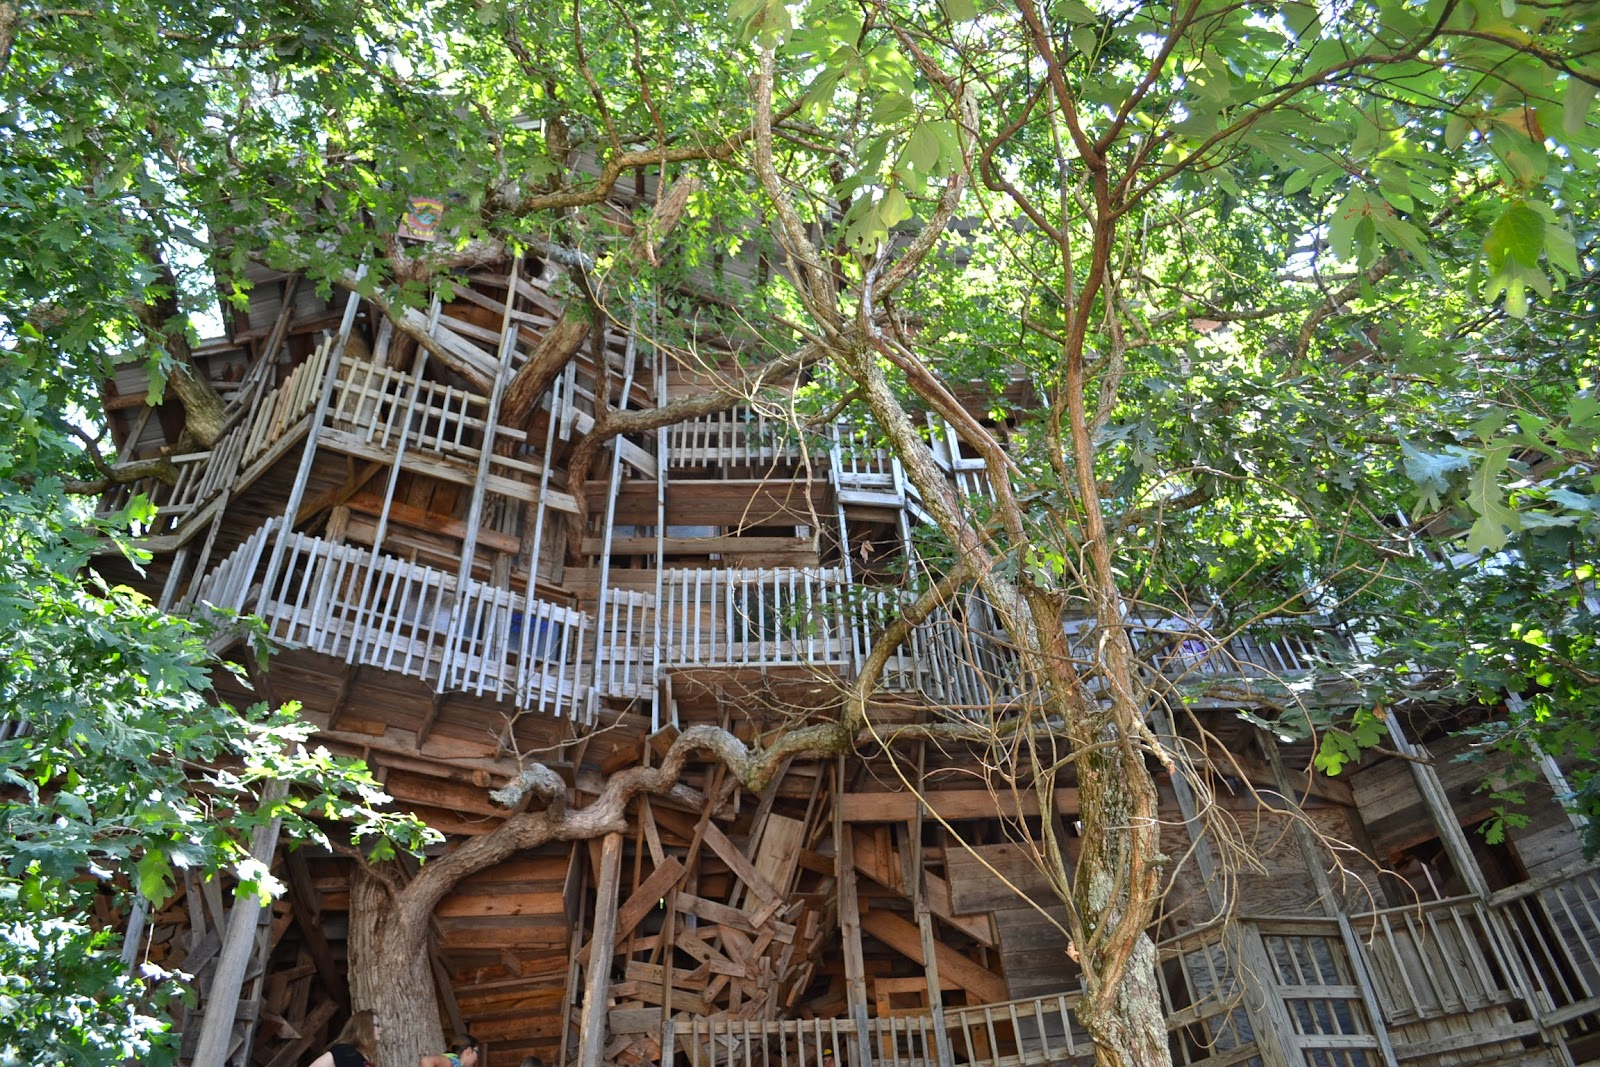 Biggest Treehouse In The World 2013 the cottage cheese: the world's largest treehouse